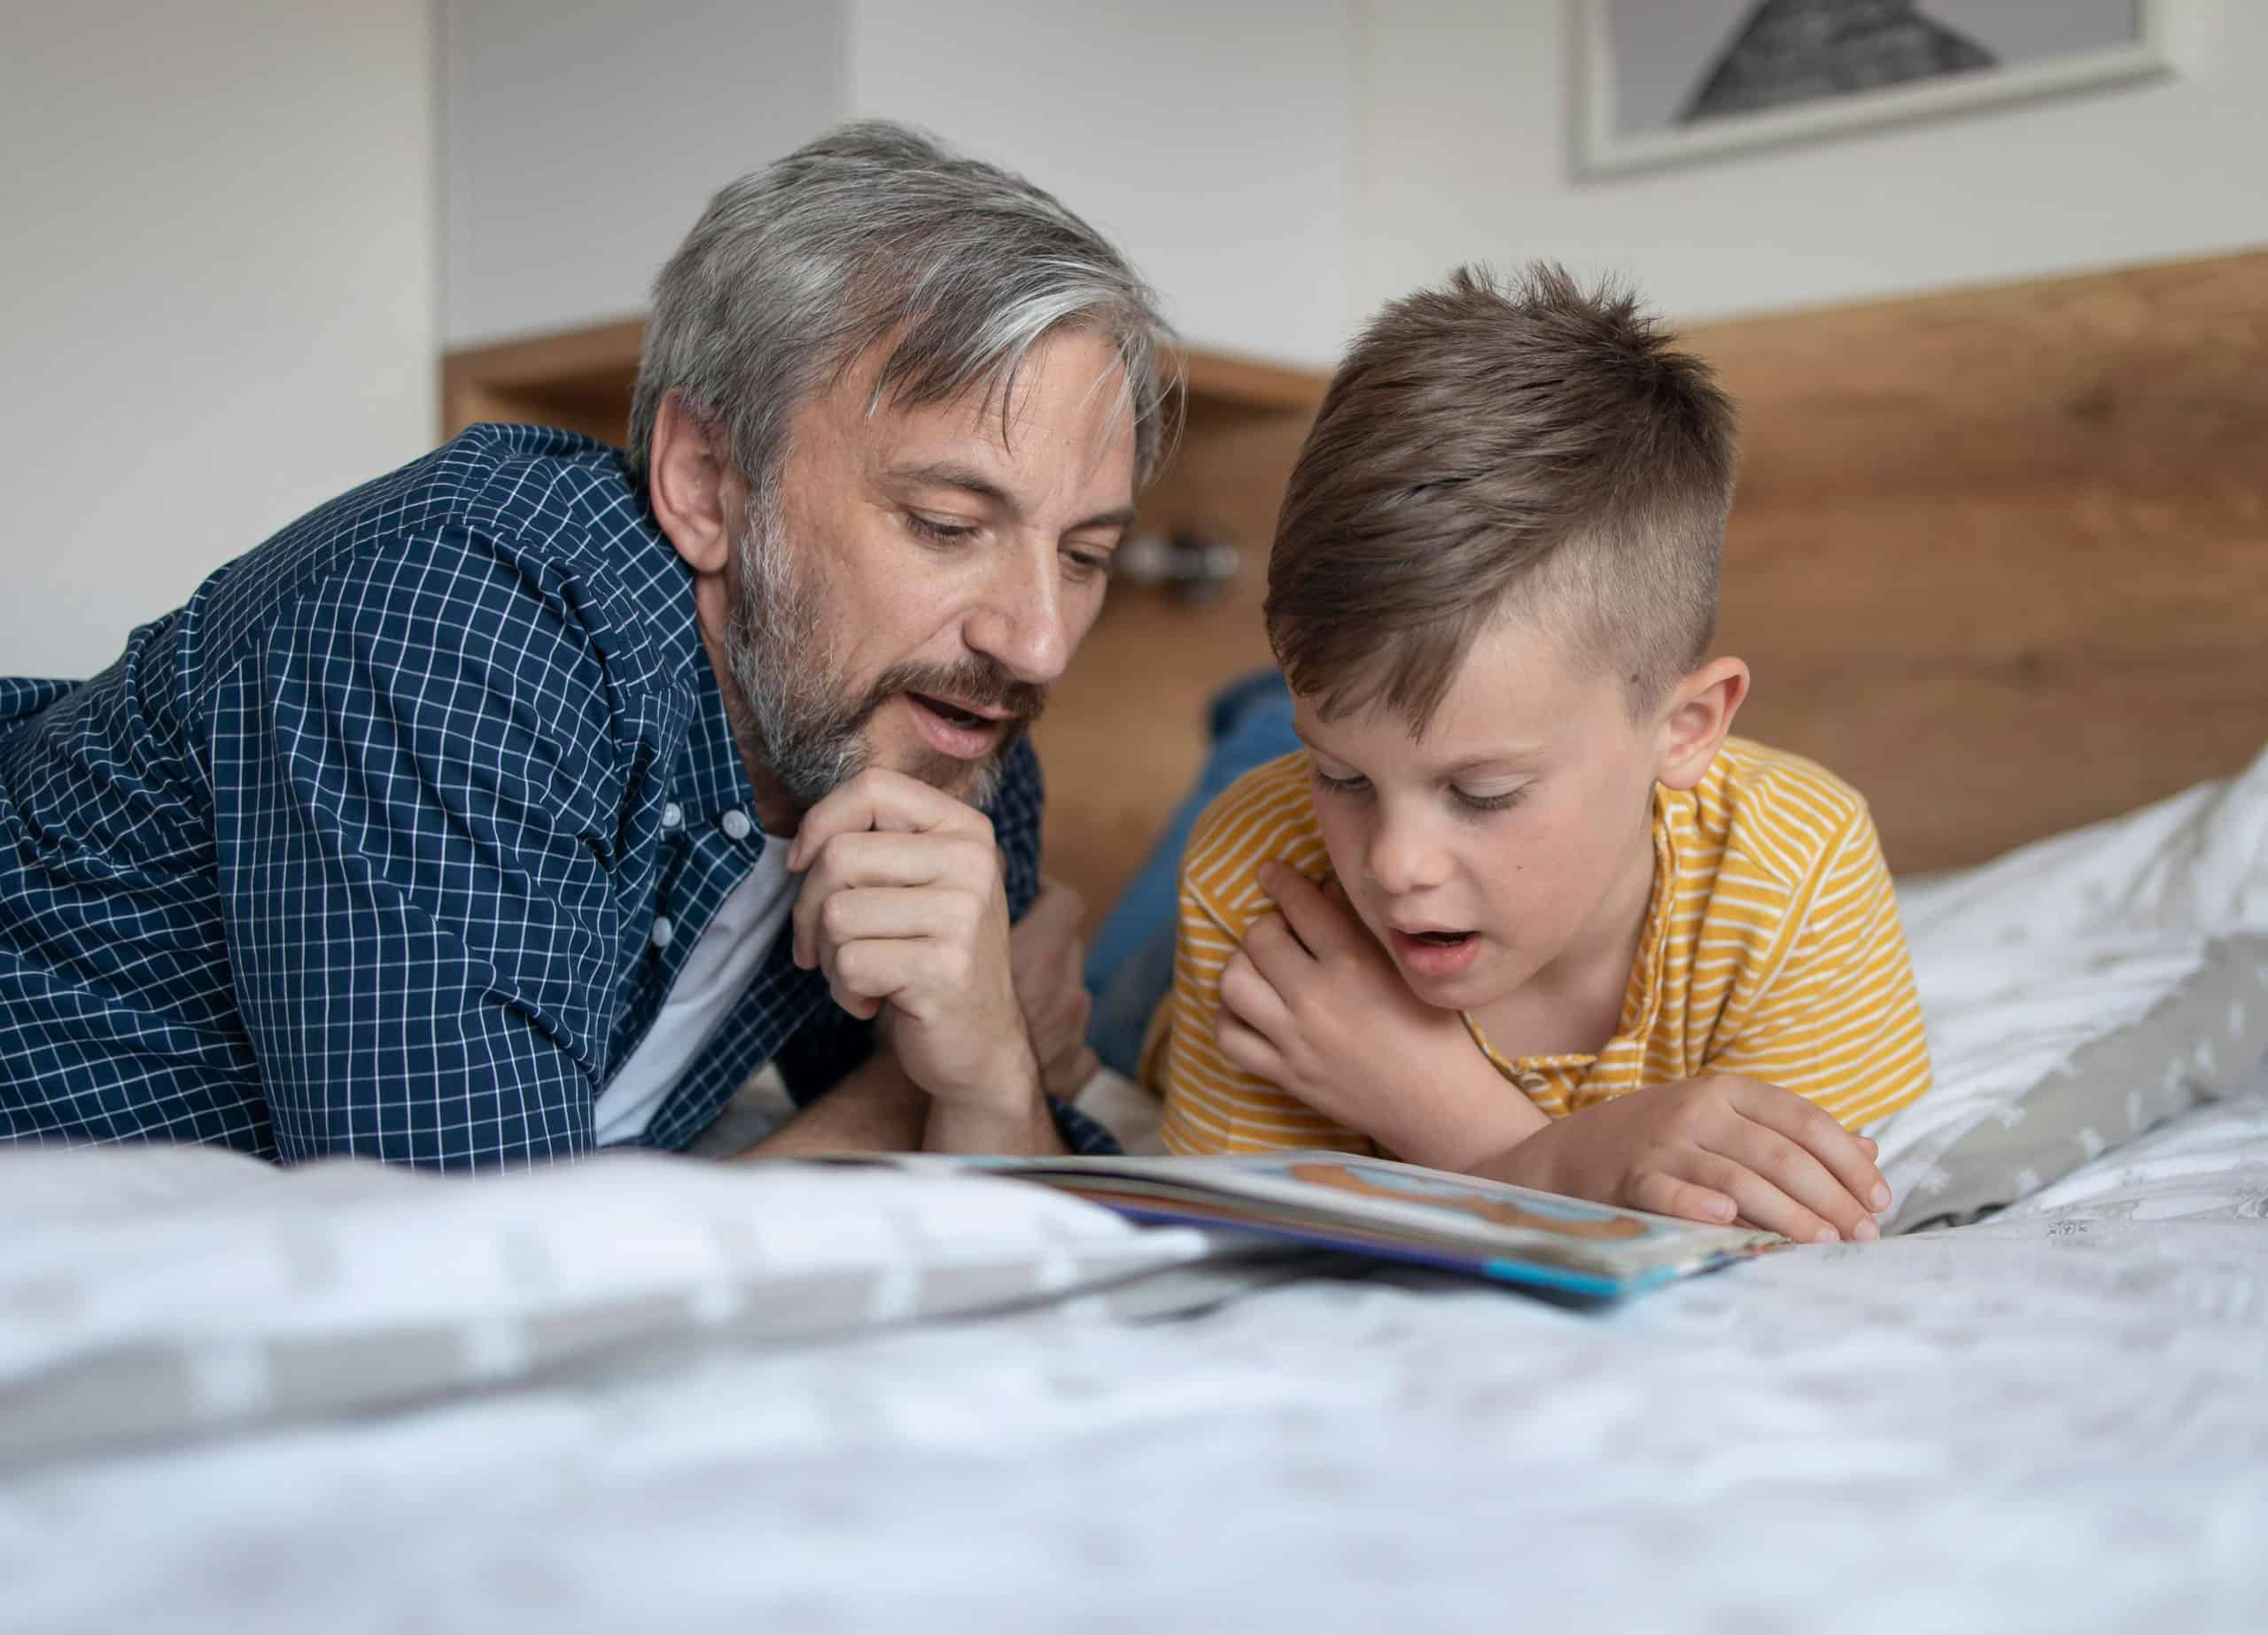 3 Ways Parents Can Help Their Child With Reading